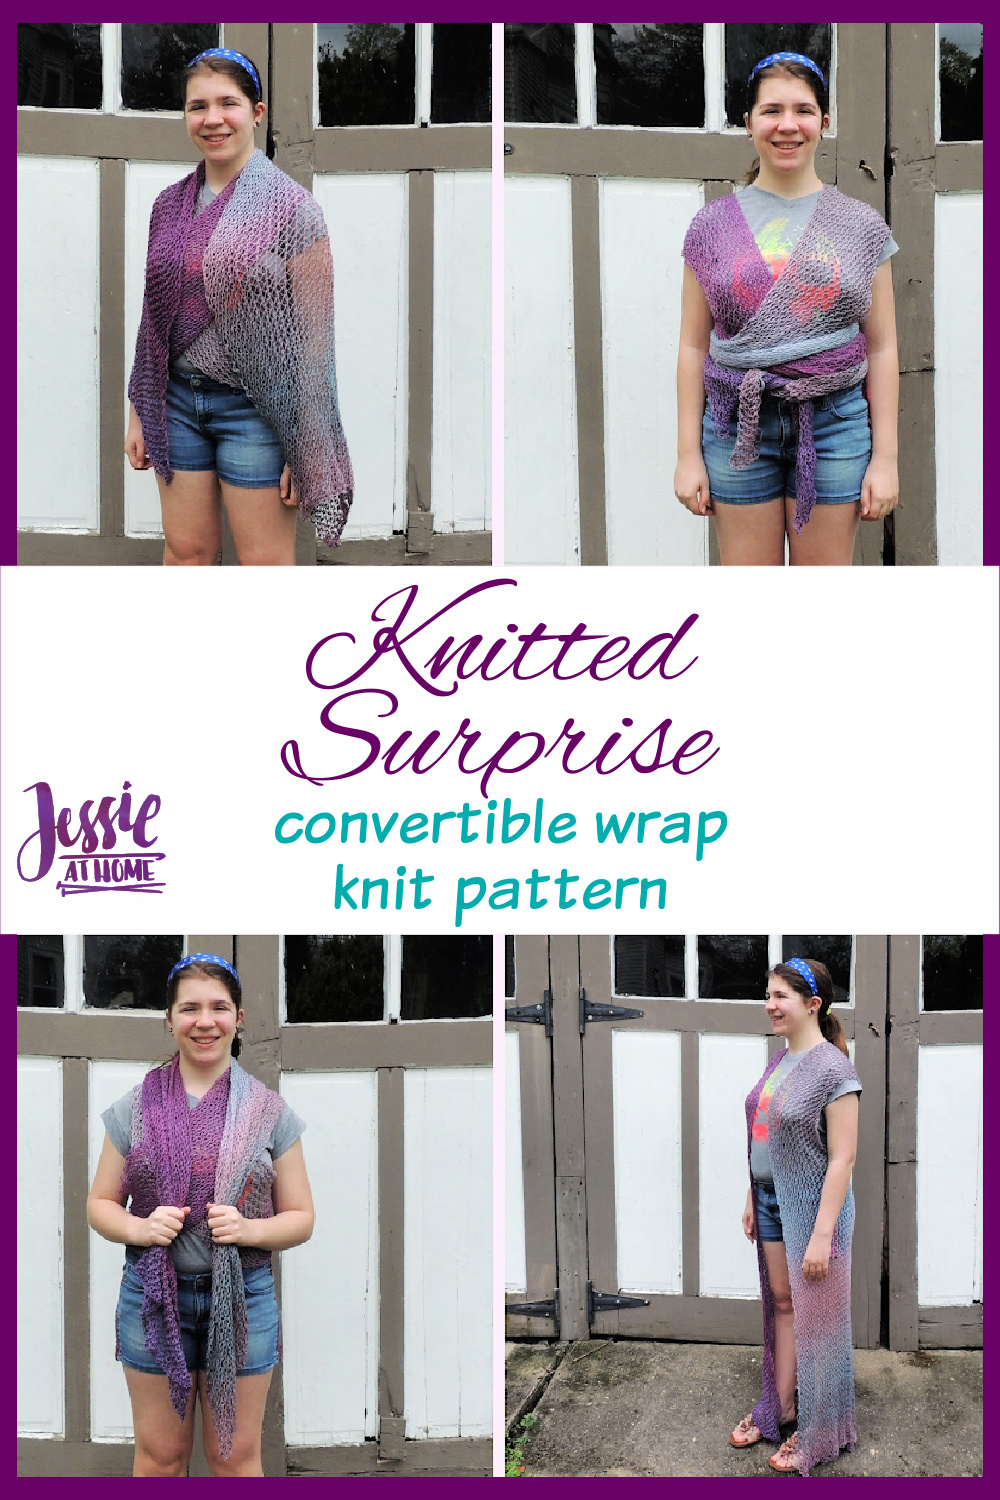 Knitted Surprise - convertible wrap knit pattern